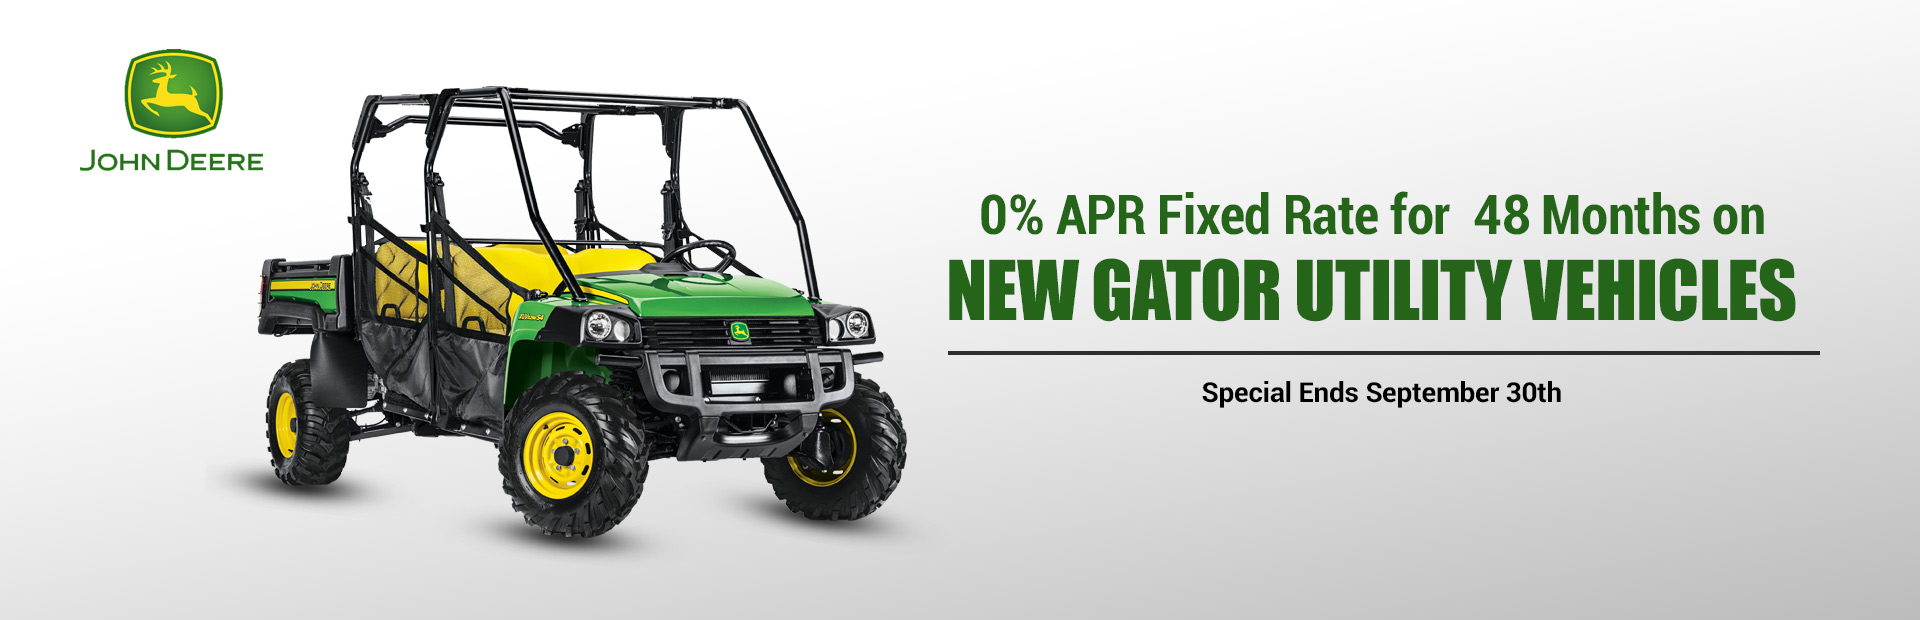 0% APR Fixed Rate for 48 Months on New John Deere Gator Utility Vehicles: Click here to view the models.